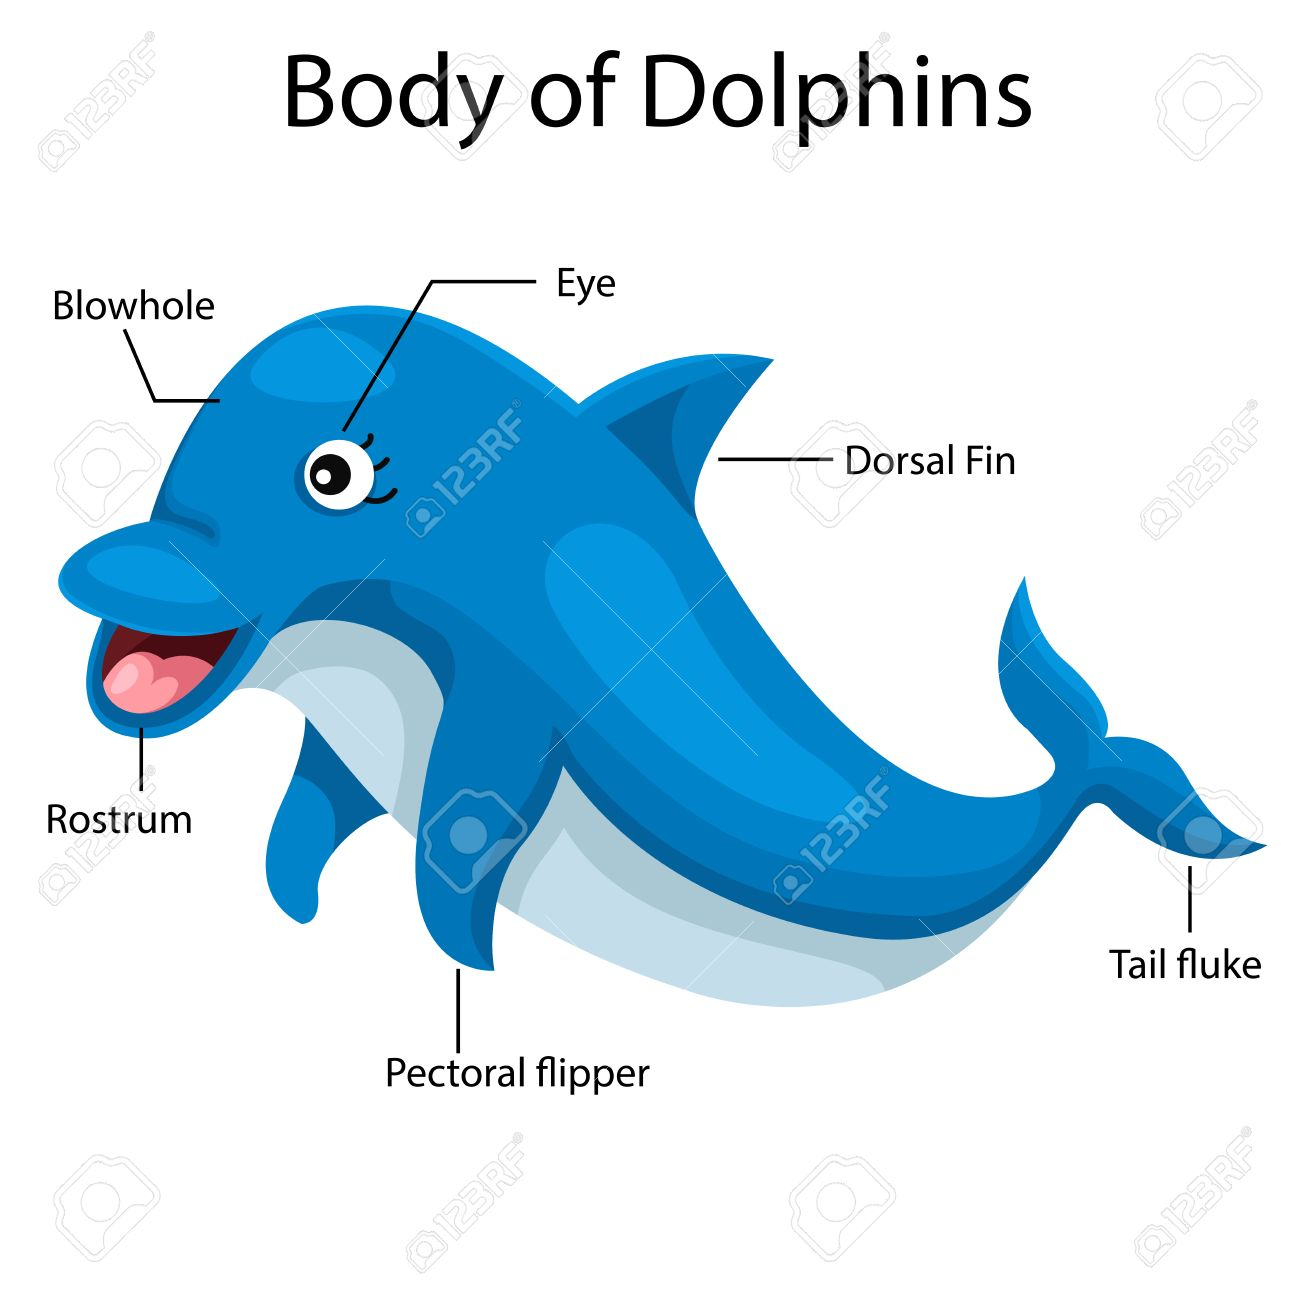 illustrator body of dolphins royalty free cliparts vectors and